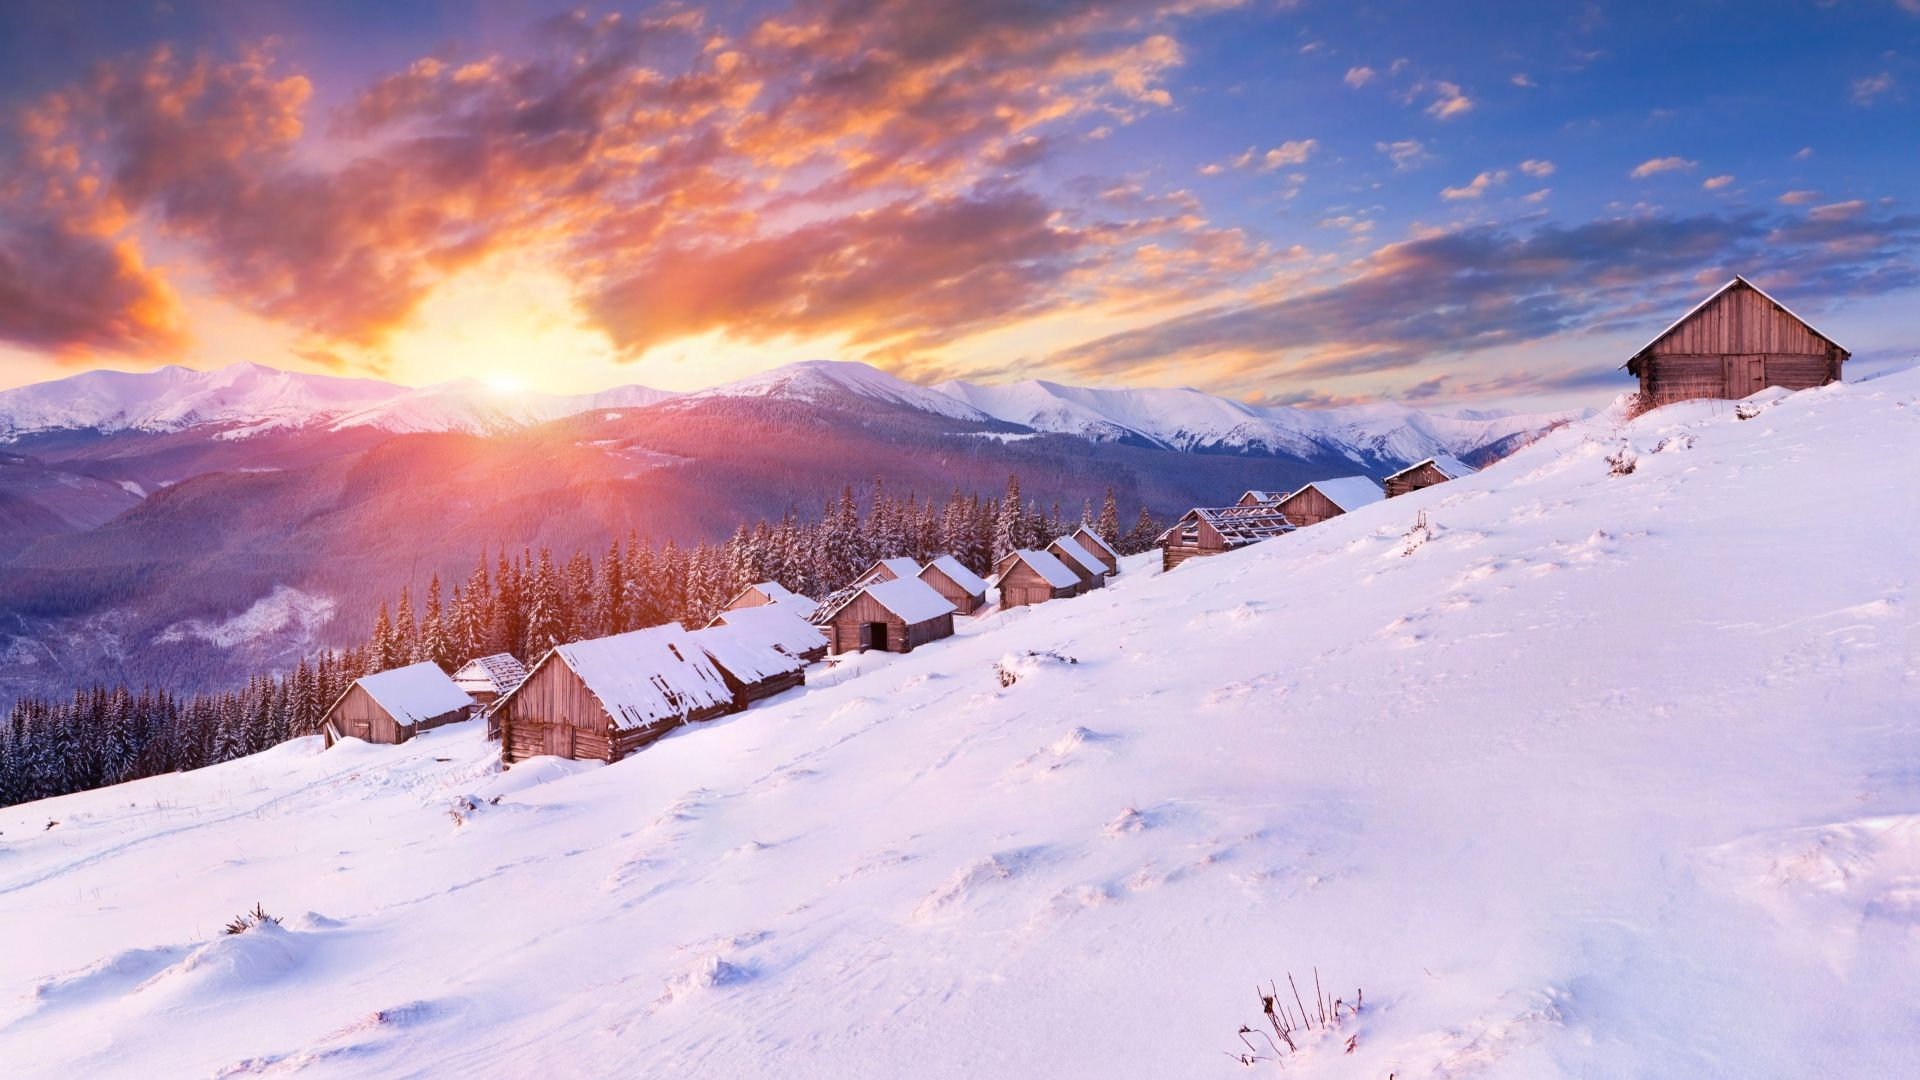 Горы, 5k, 4k, холмы, закат, снег, зима, дом, Mountains, 5k, 4k wallpaper, hills, sunset, snow, winter, house (horizontal)